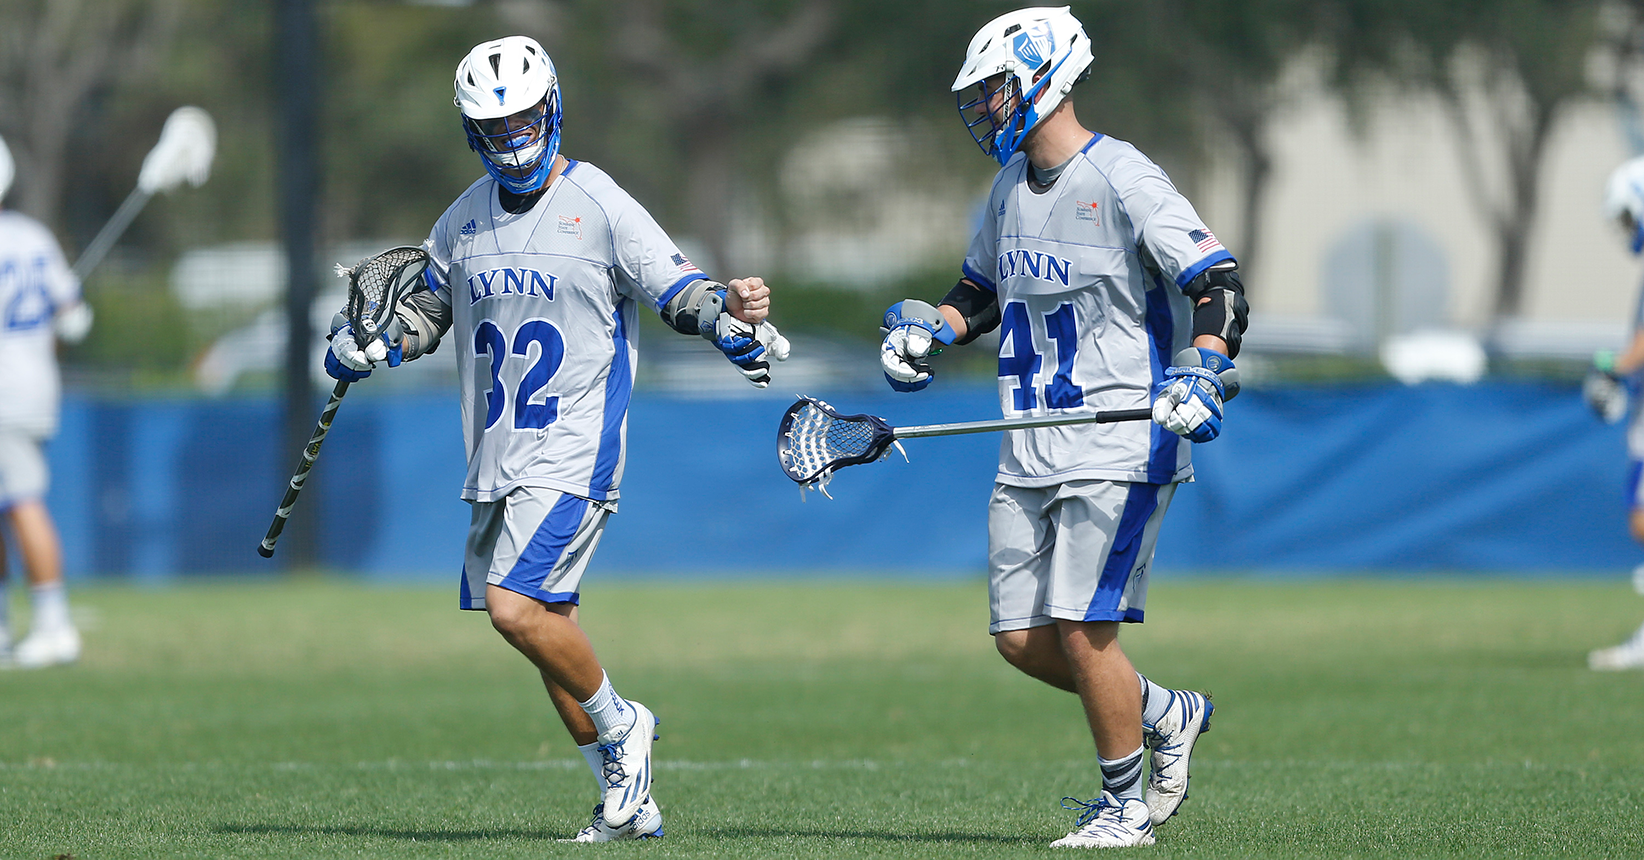 No. 12 Lacrosse Grinds out 12-8 Road Clash; Jerhoff Breaks Scoring Record